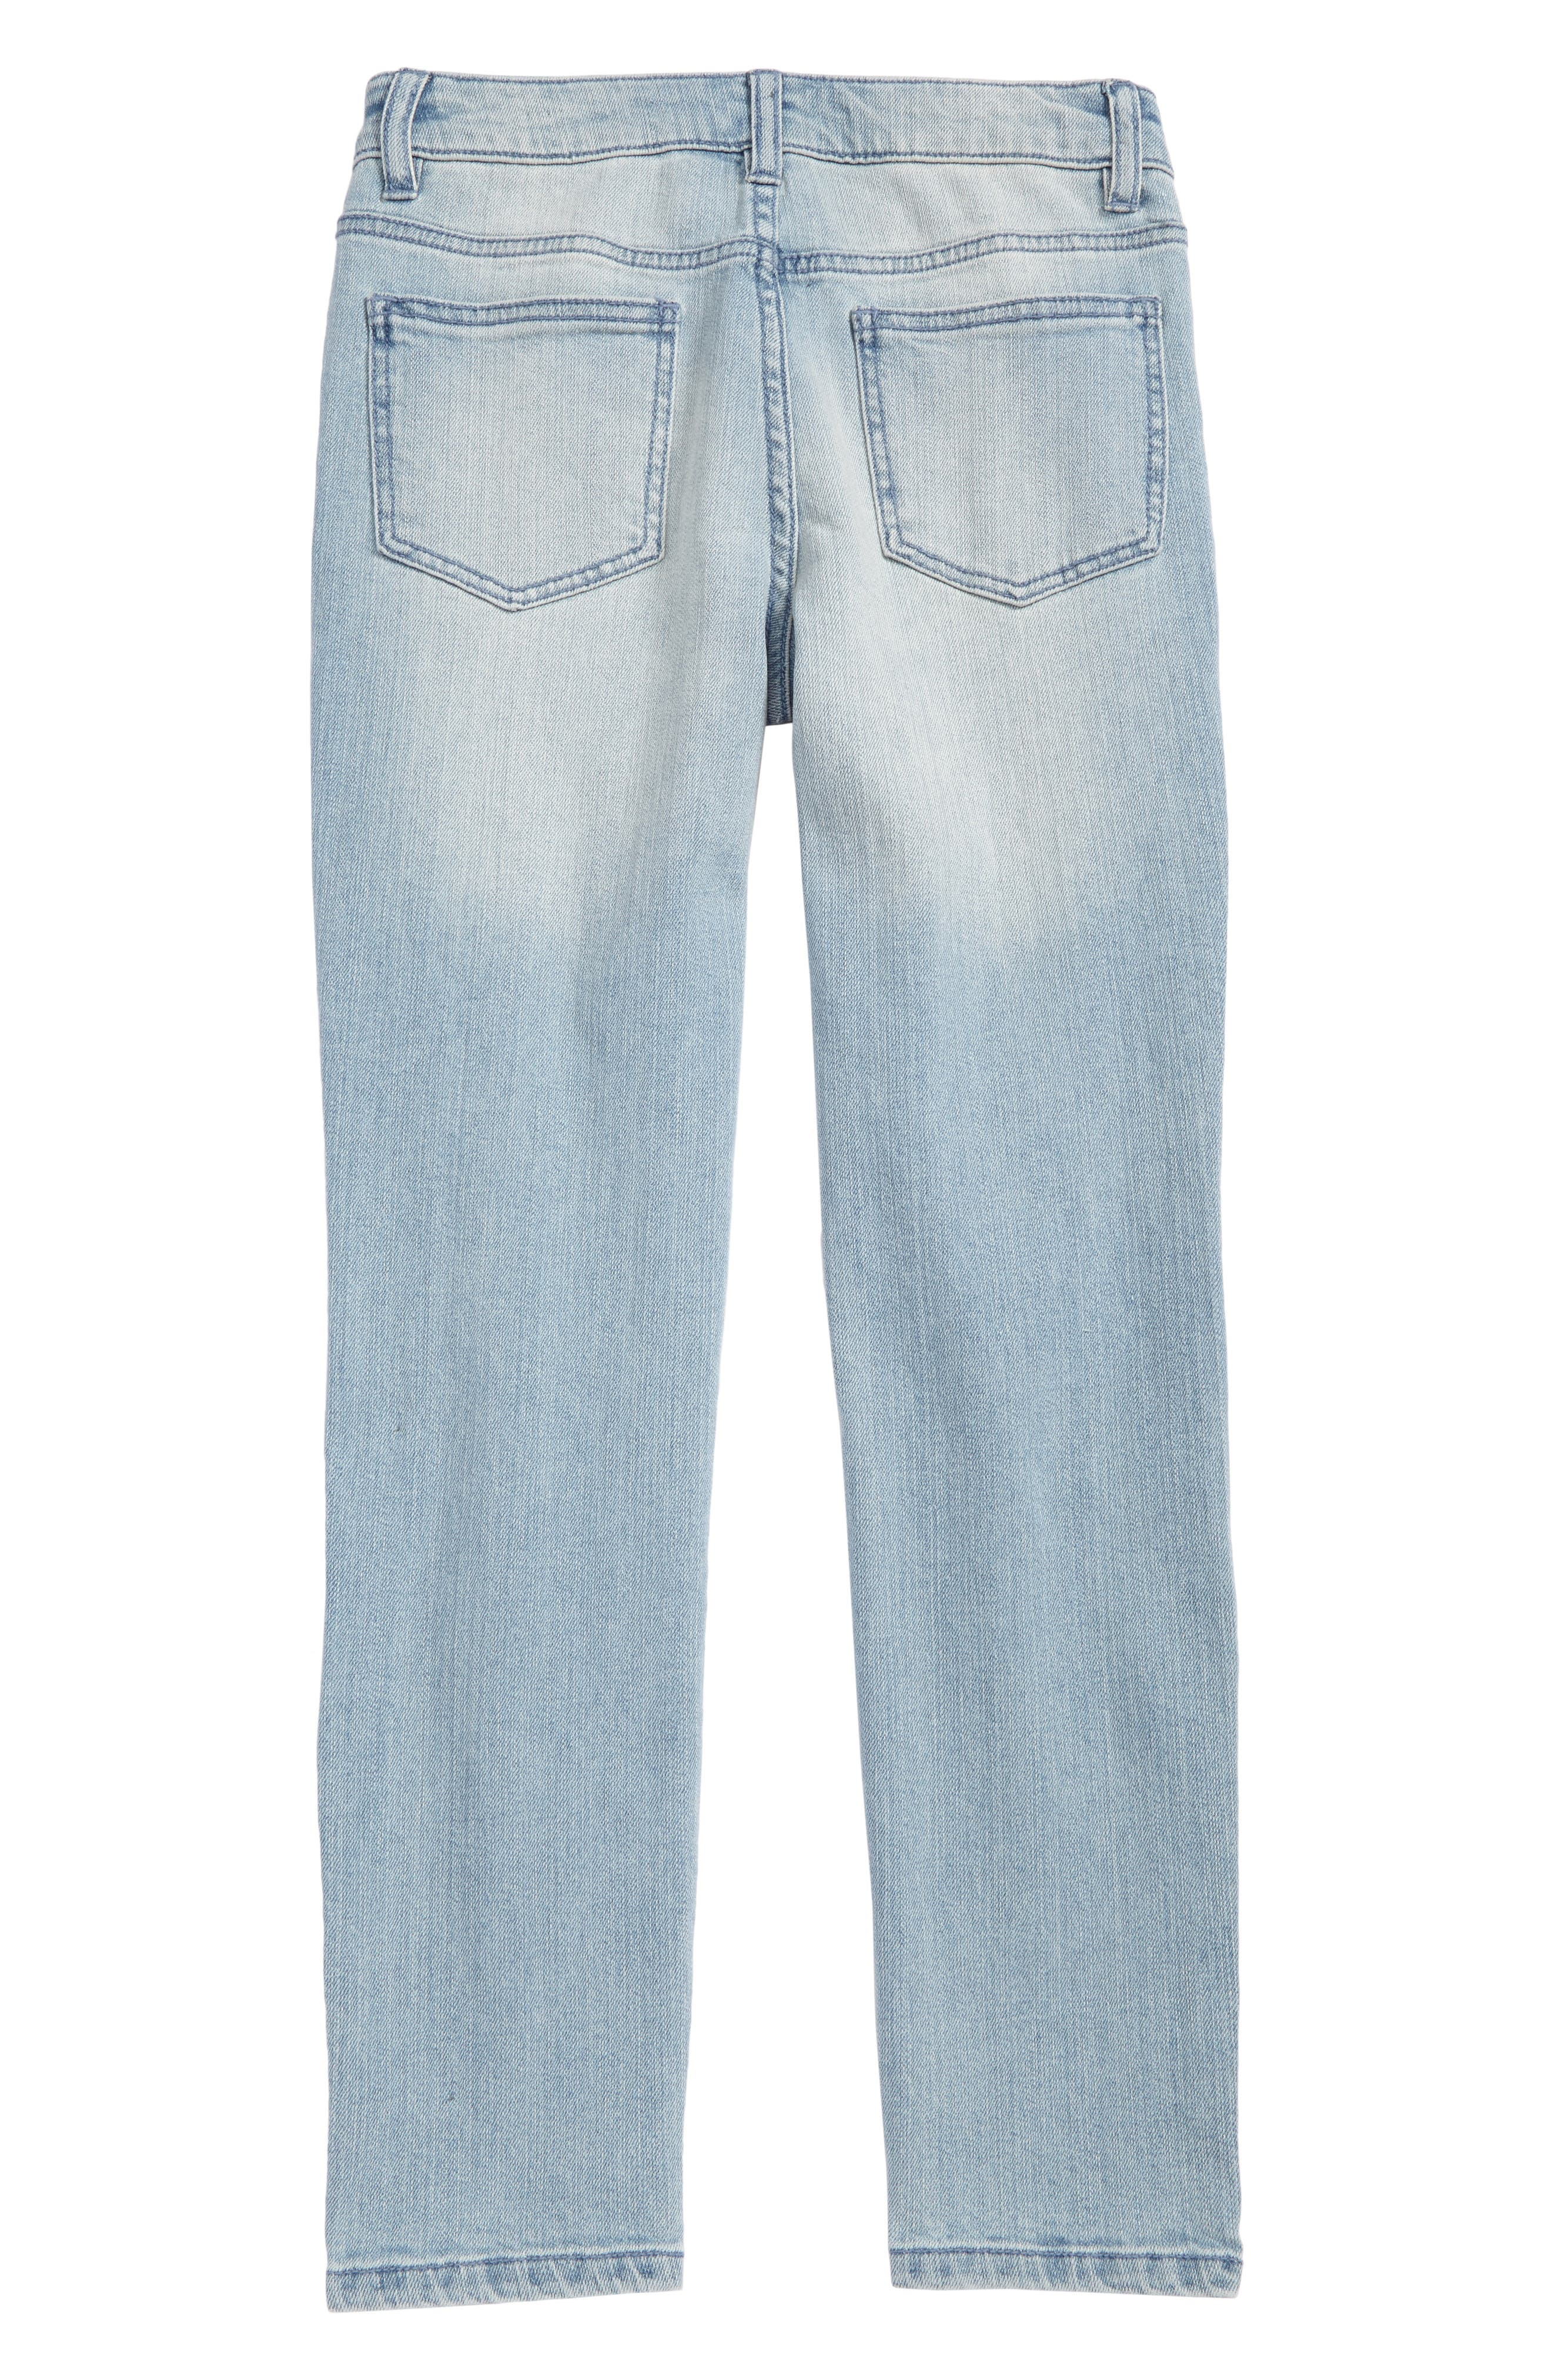 Rip & Repair Straight Leg Jeans,                             Alternate thumbnail 2, color,                             460